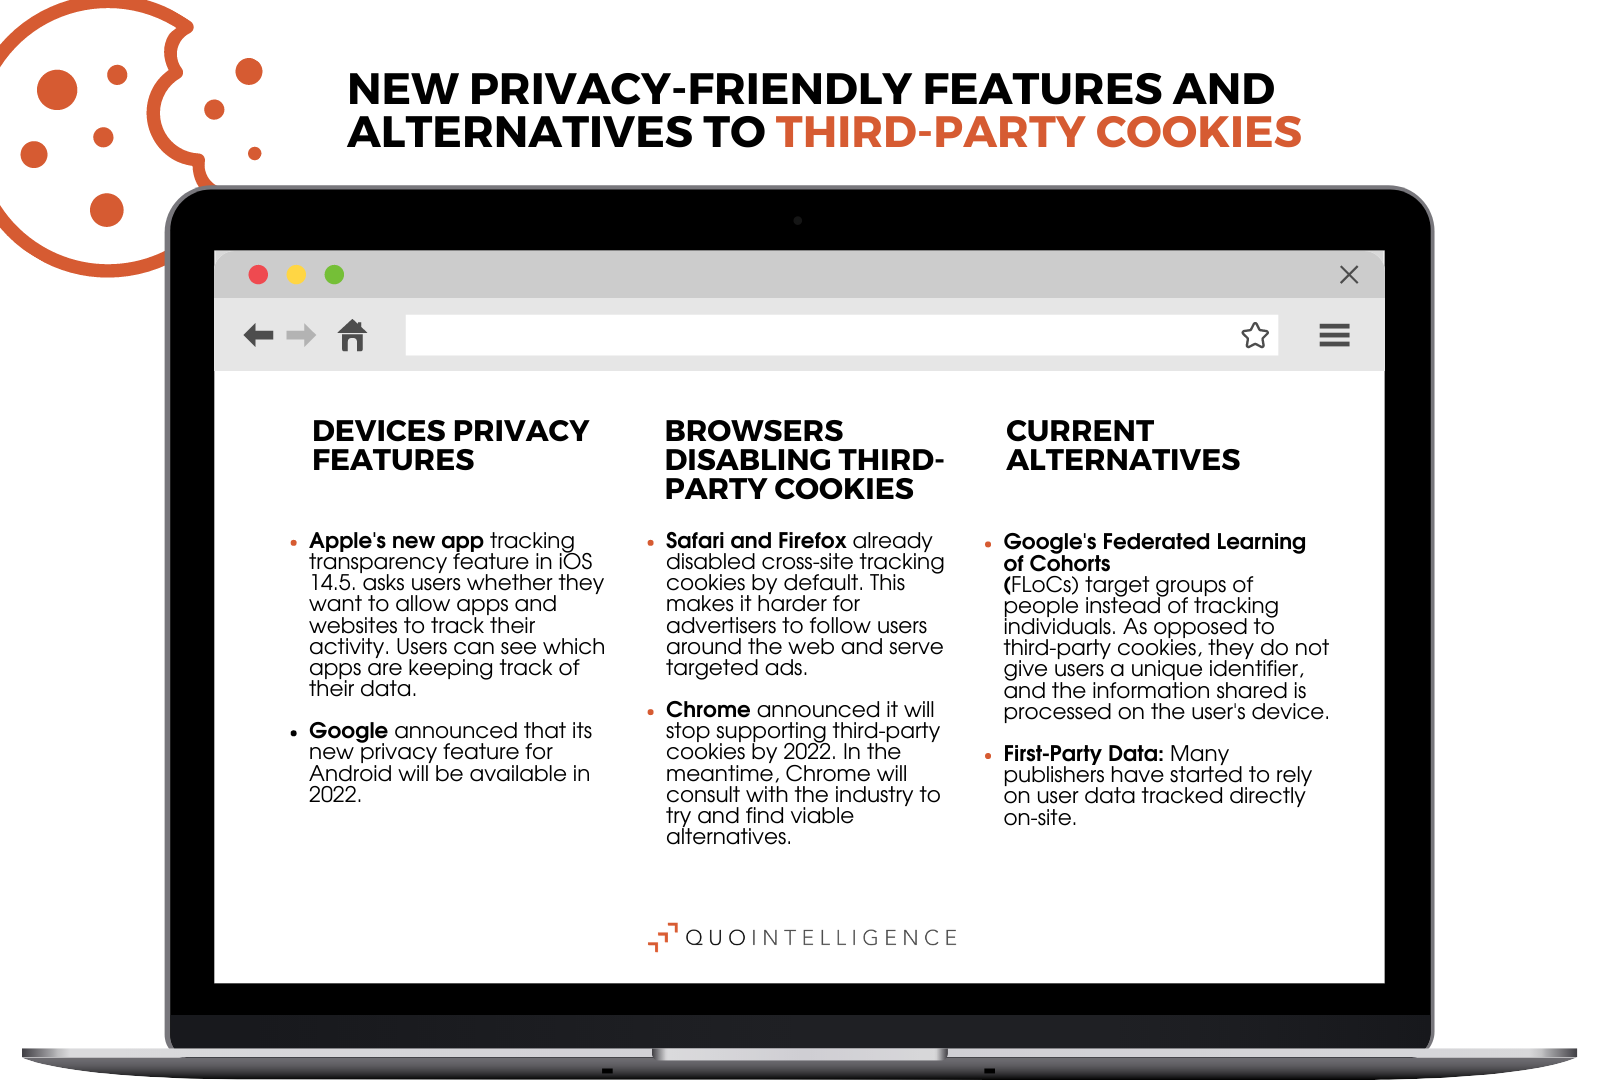 Infographic on current third-party cookies alternatives for more user- and privacy friendly browsing